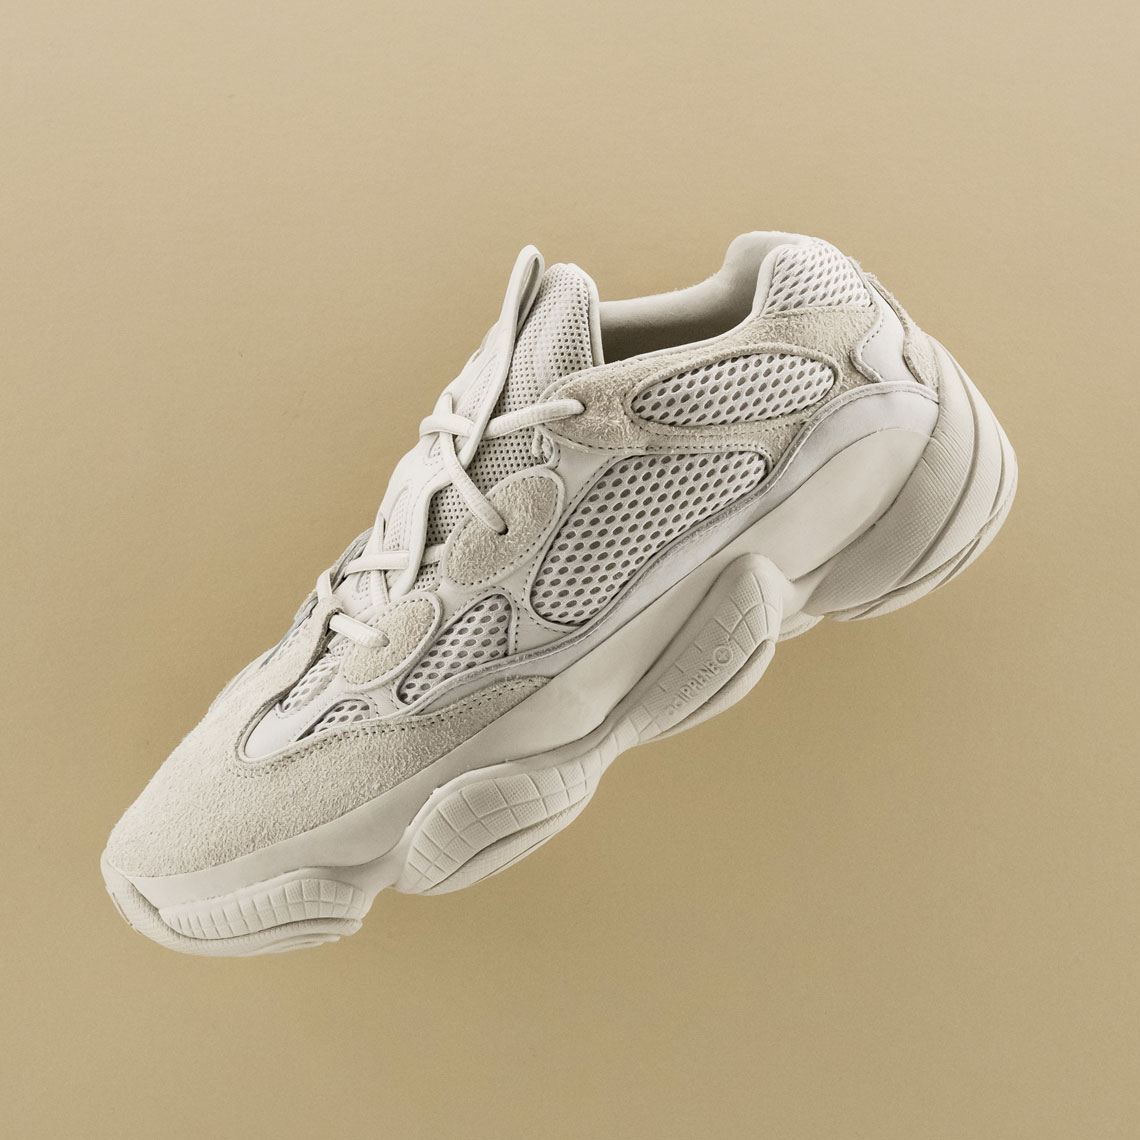 """27a0296742a3 Detailed Look At The adidas Yeezy 500 """"Blush"""""""